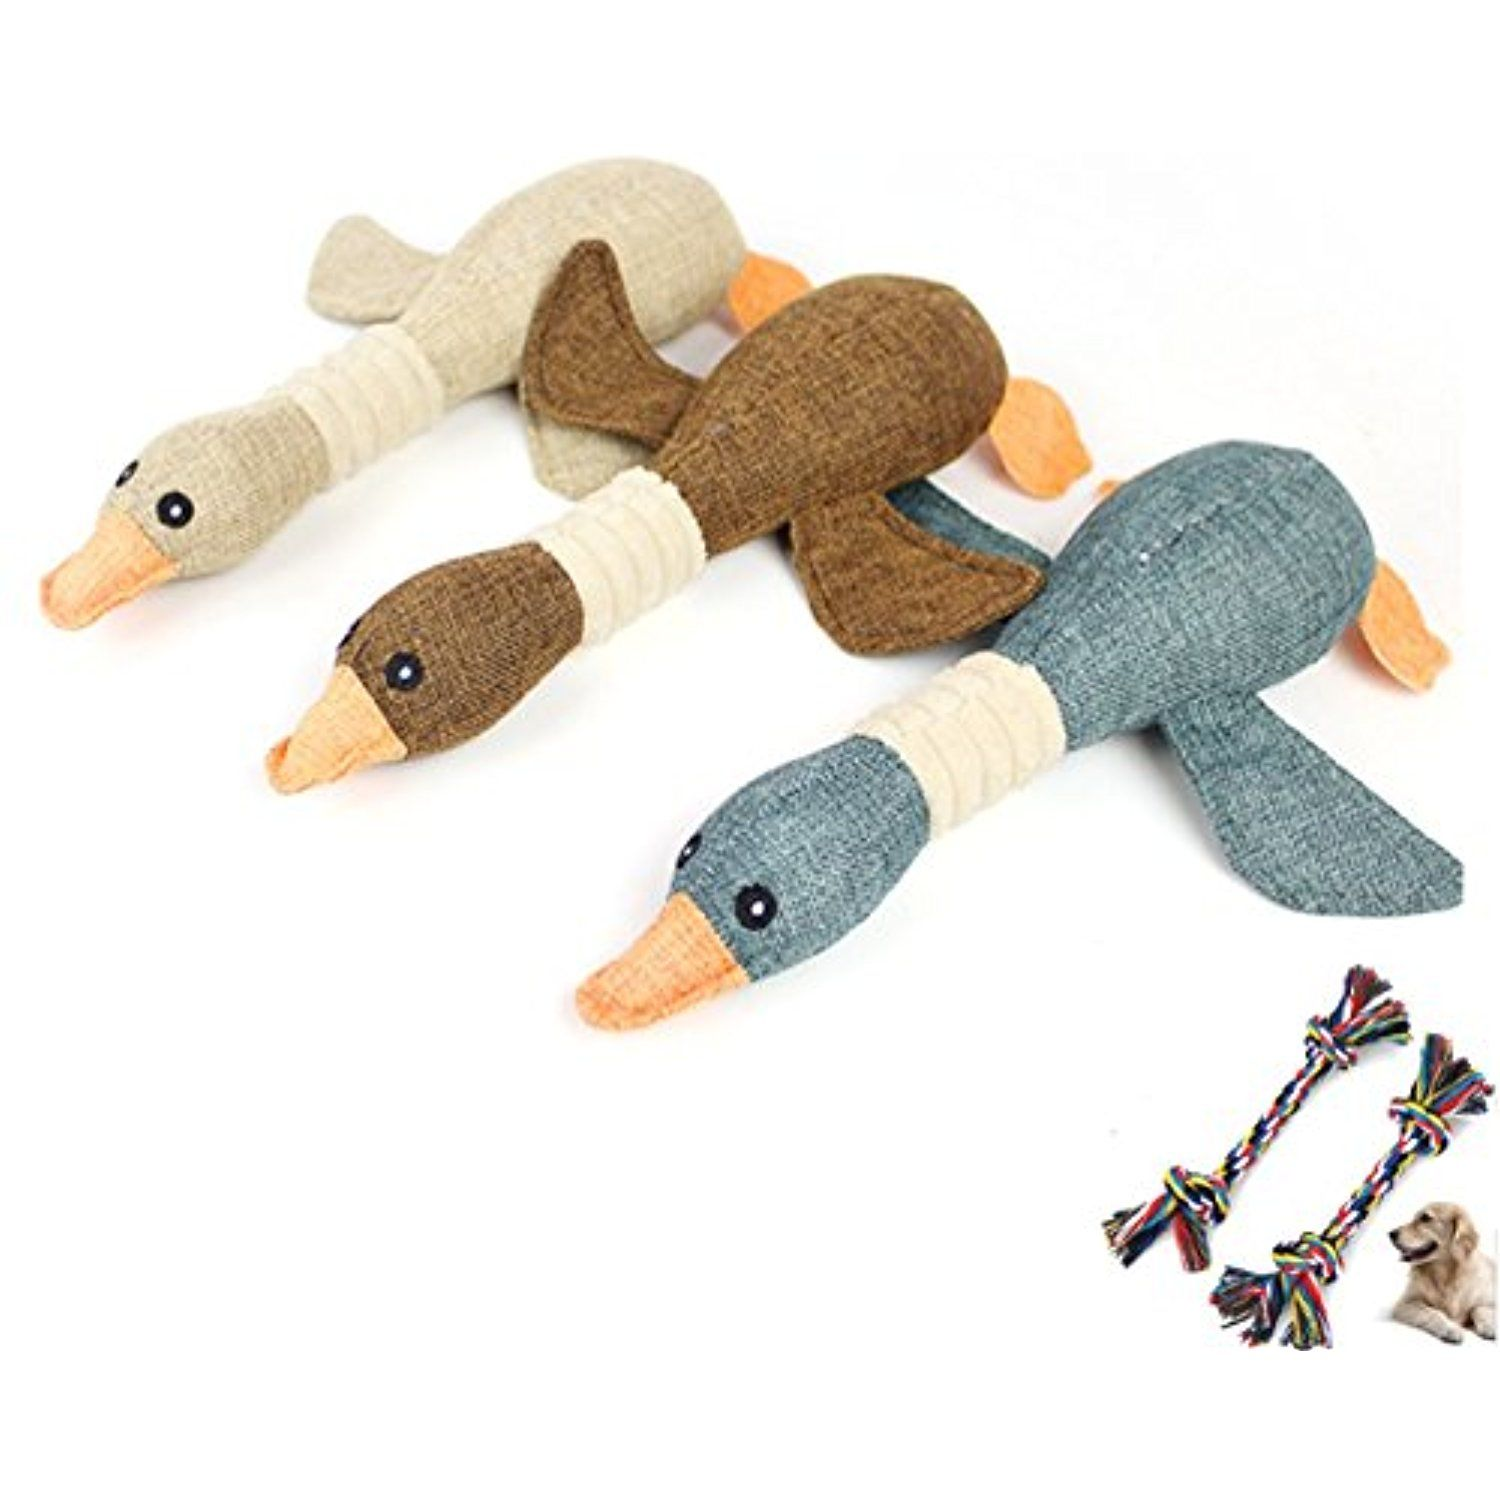 Dog Chew Toys Pet Mallard Duck Dog Toy Durable Squeaky Dog Toy for